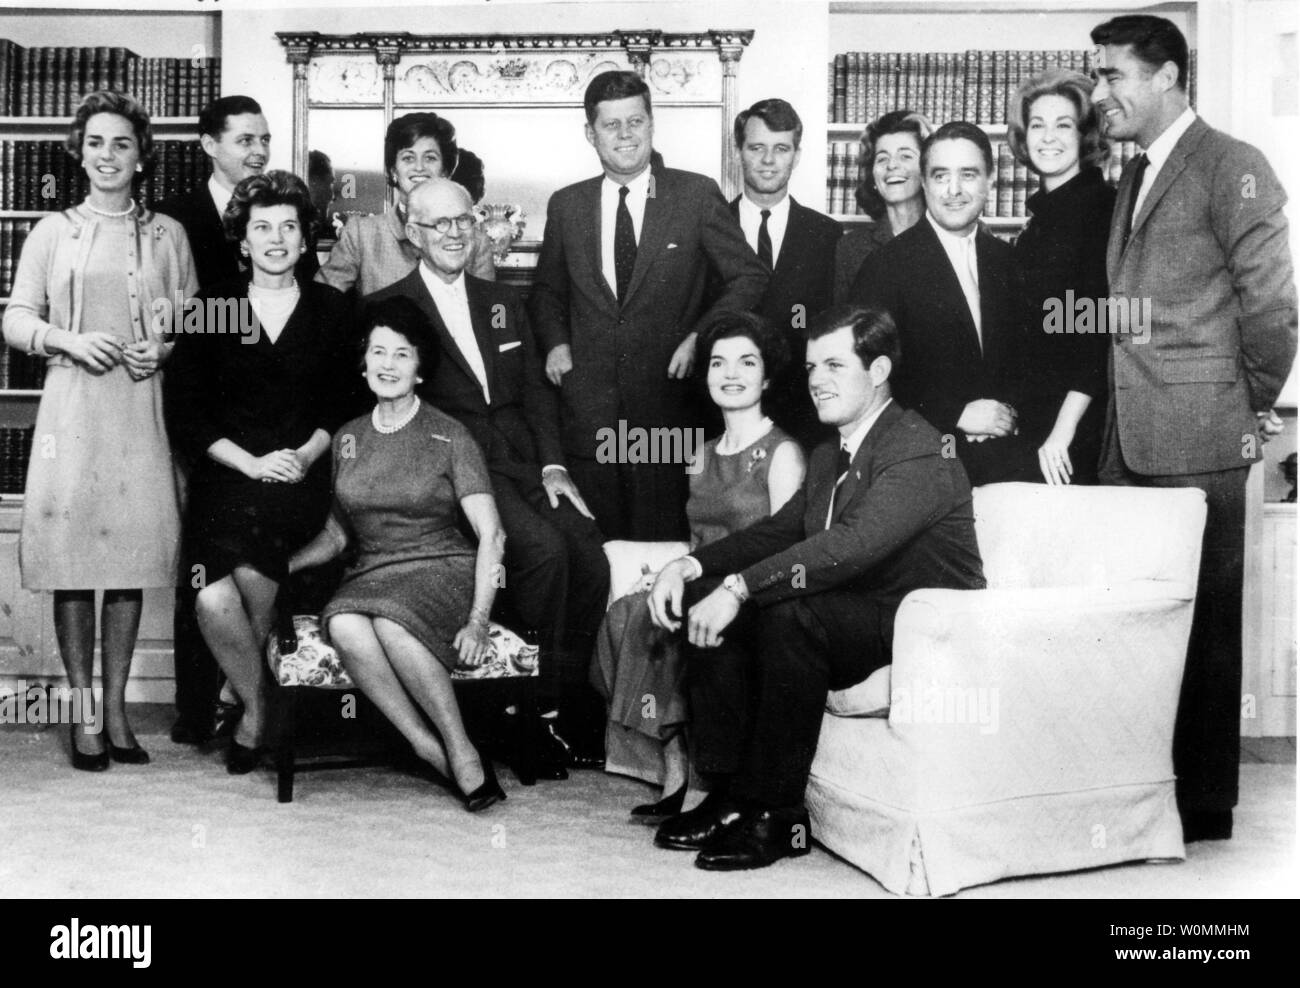 Will Smith Black and White Stock Photos & Images - Alamy